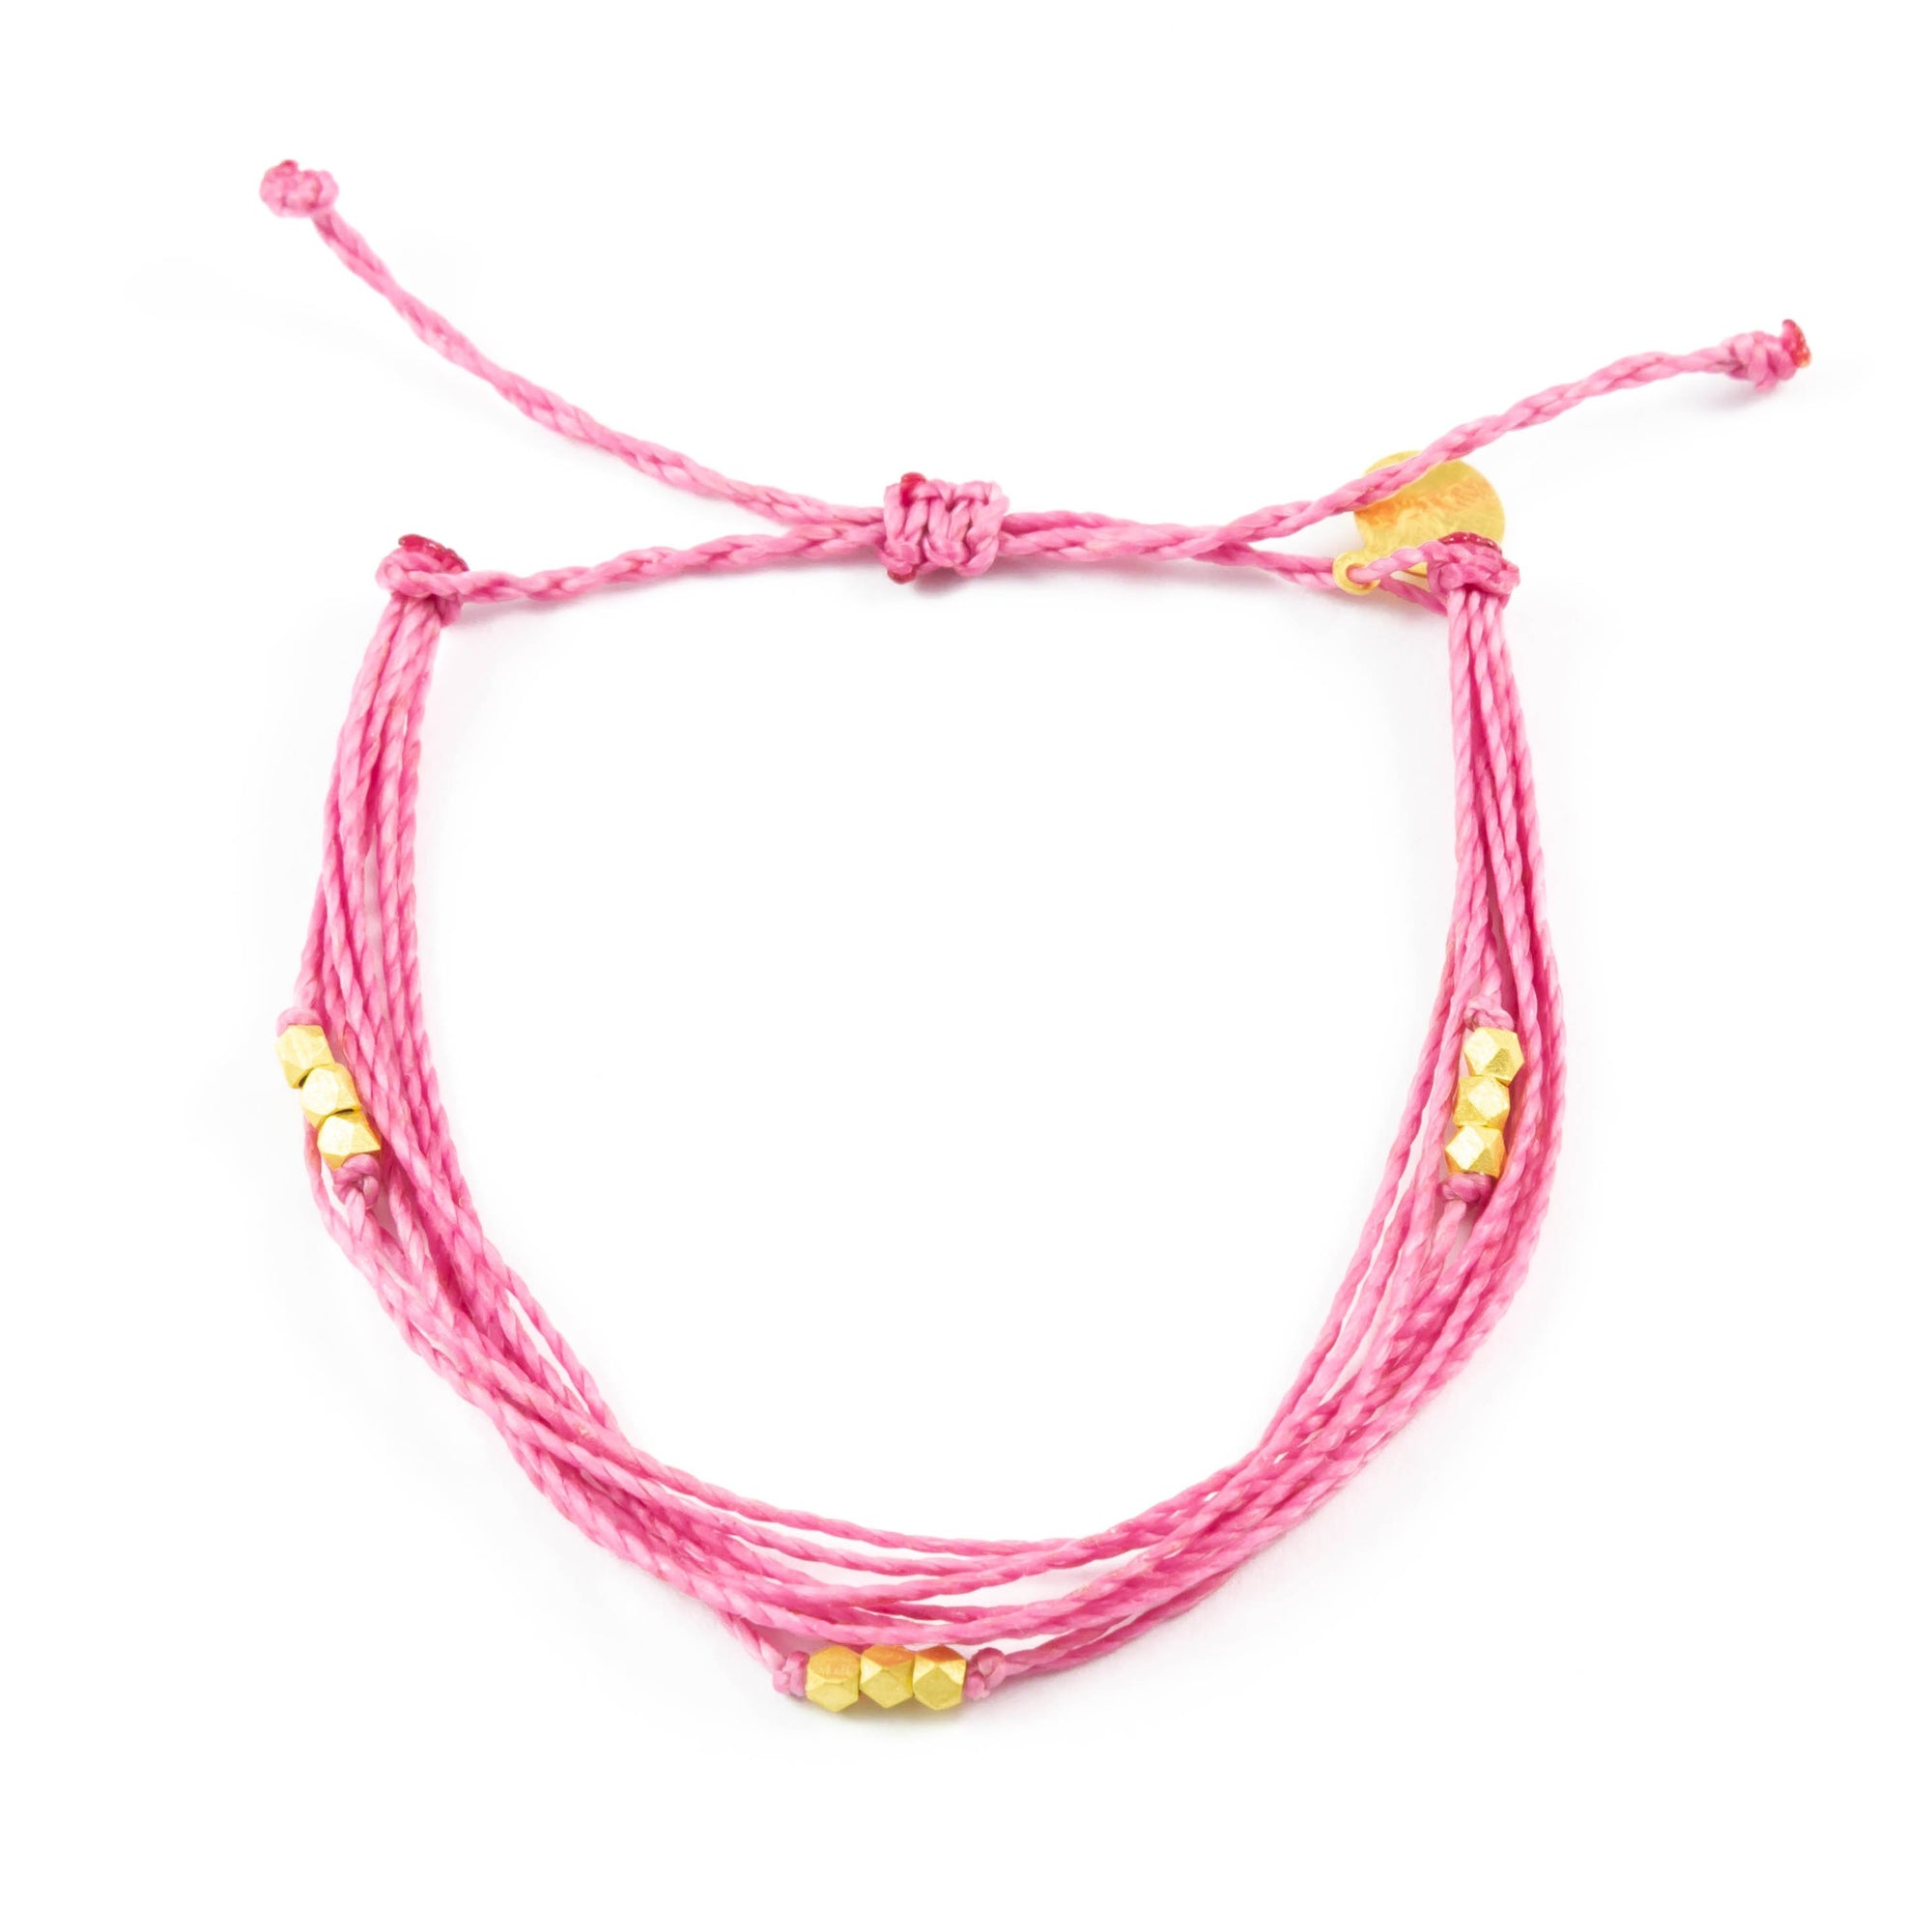 Rose Macua Bracelet in Gold